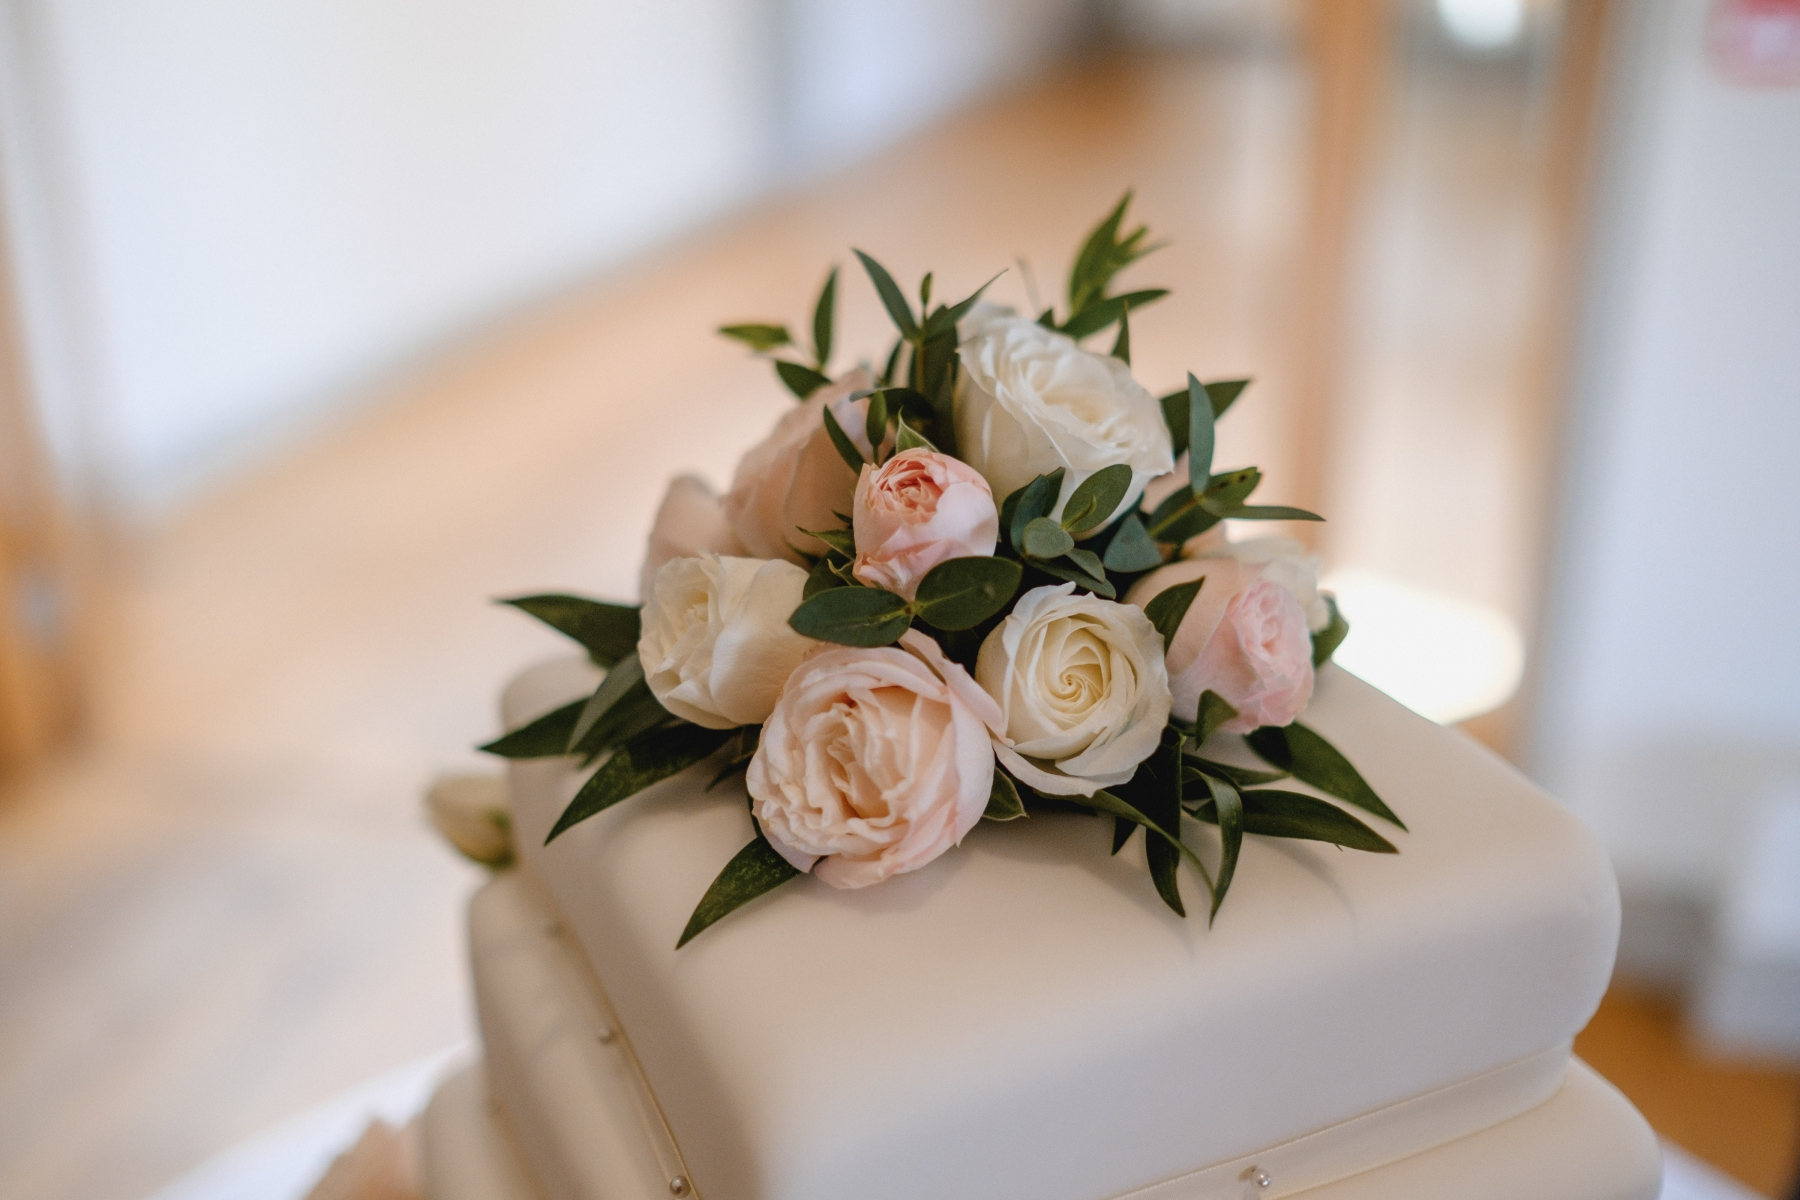 Martyn and Luke 18th September 2018 - Wedding Cake Flowers